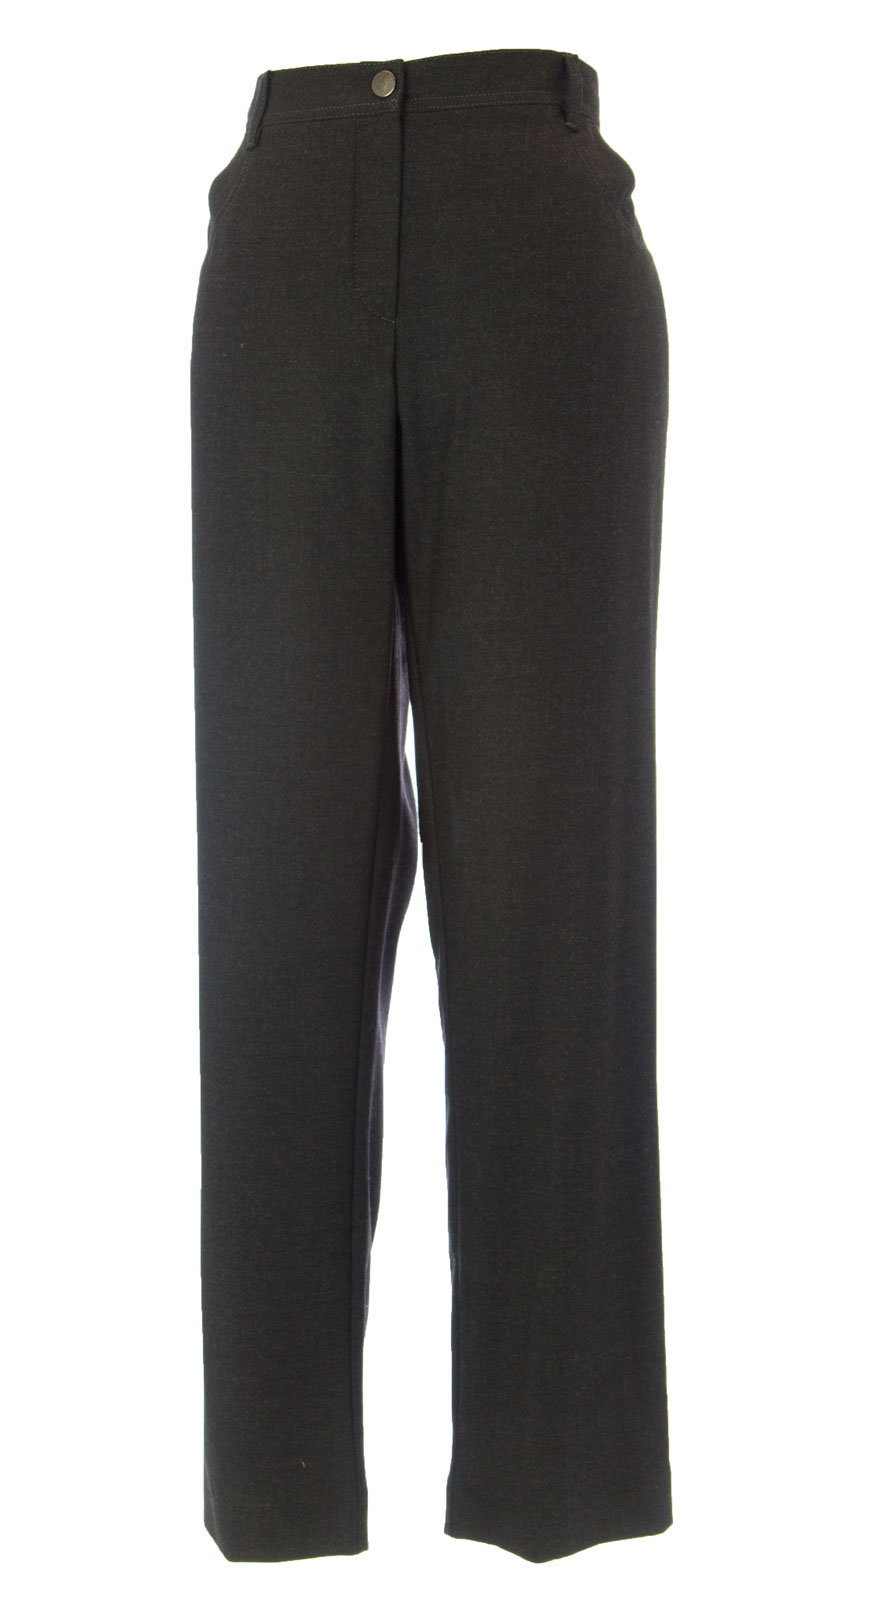 MARINA RINALDI by MaxMara Edmea Charcoal Striaght Leg Dress Pants  12W   21